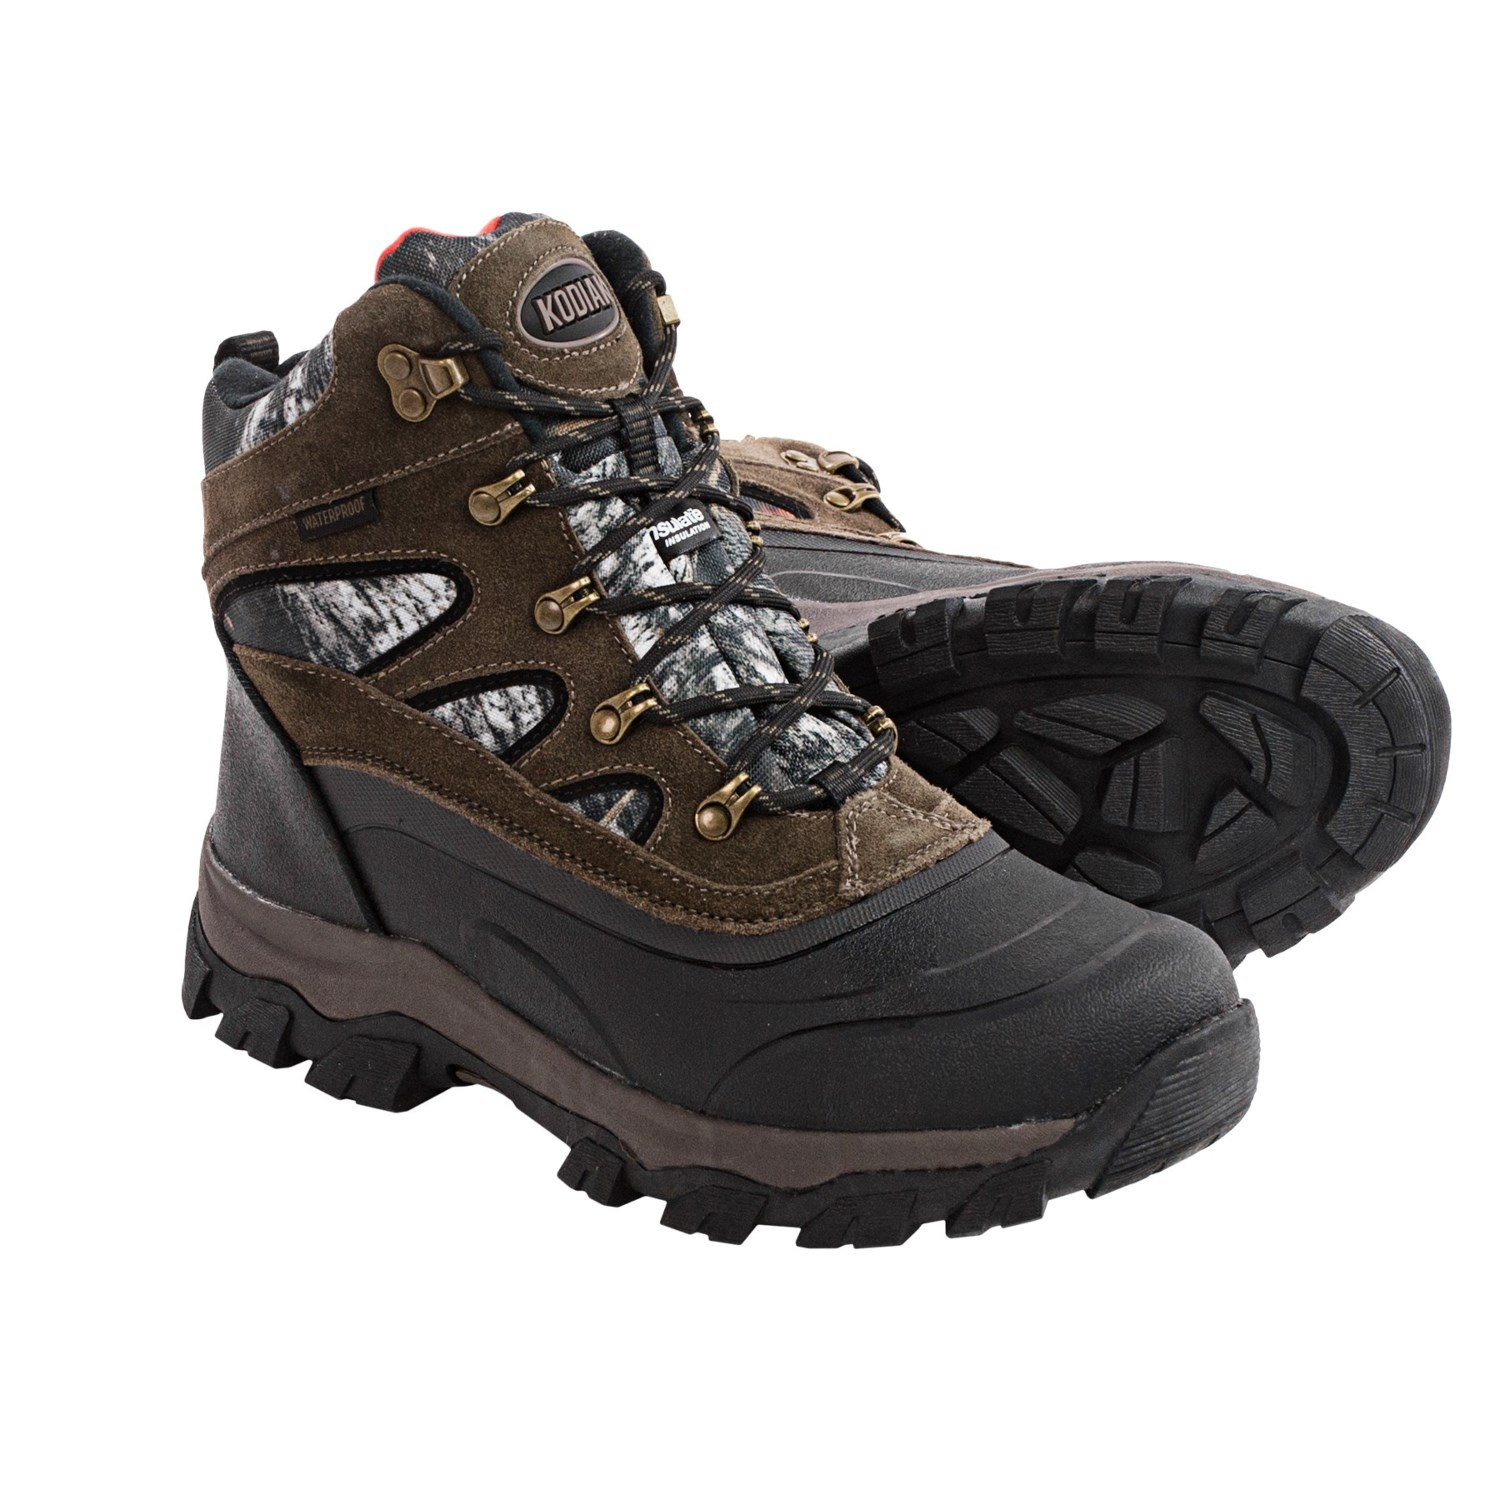 Snow Boots For Men Clearance cbYddBPz